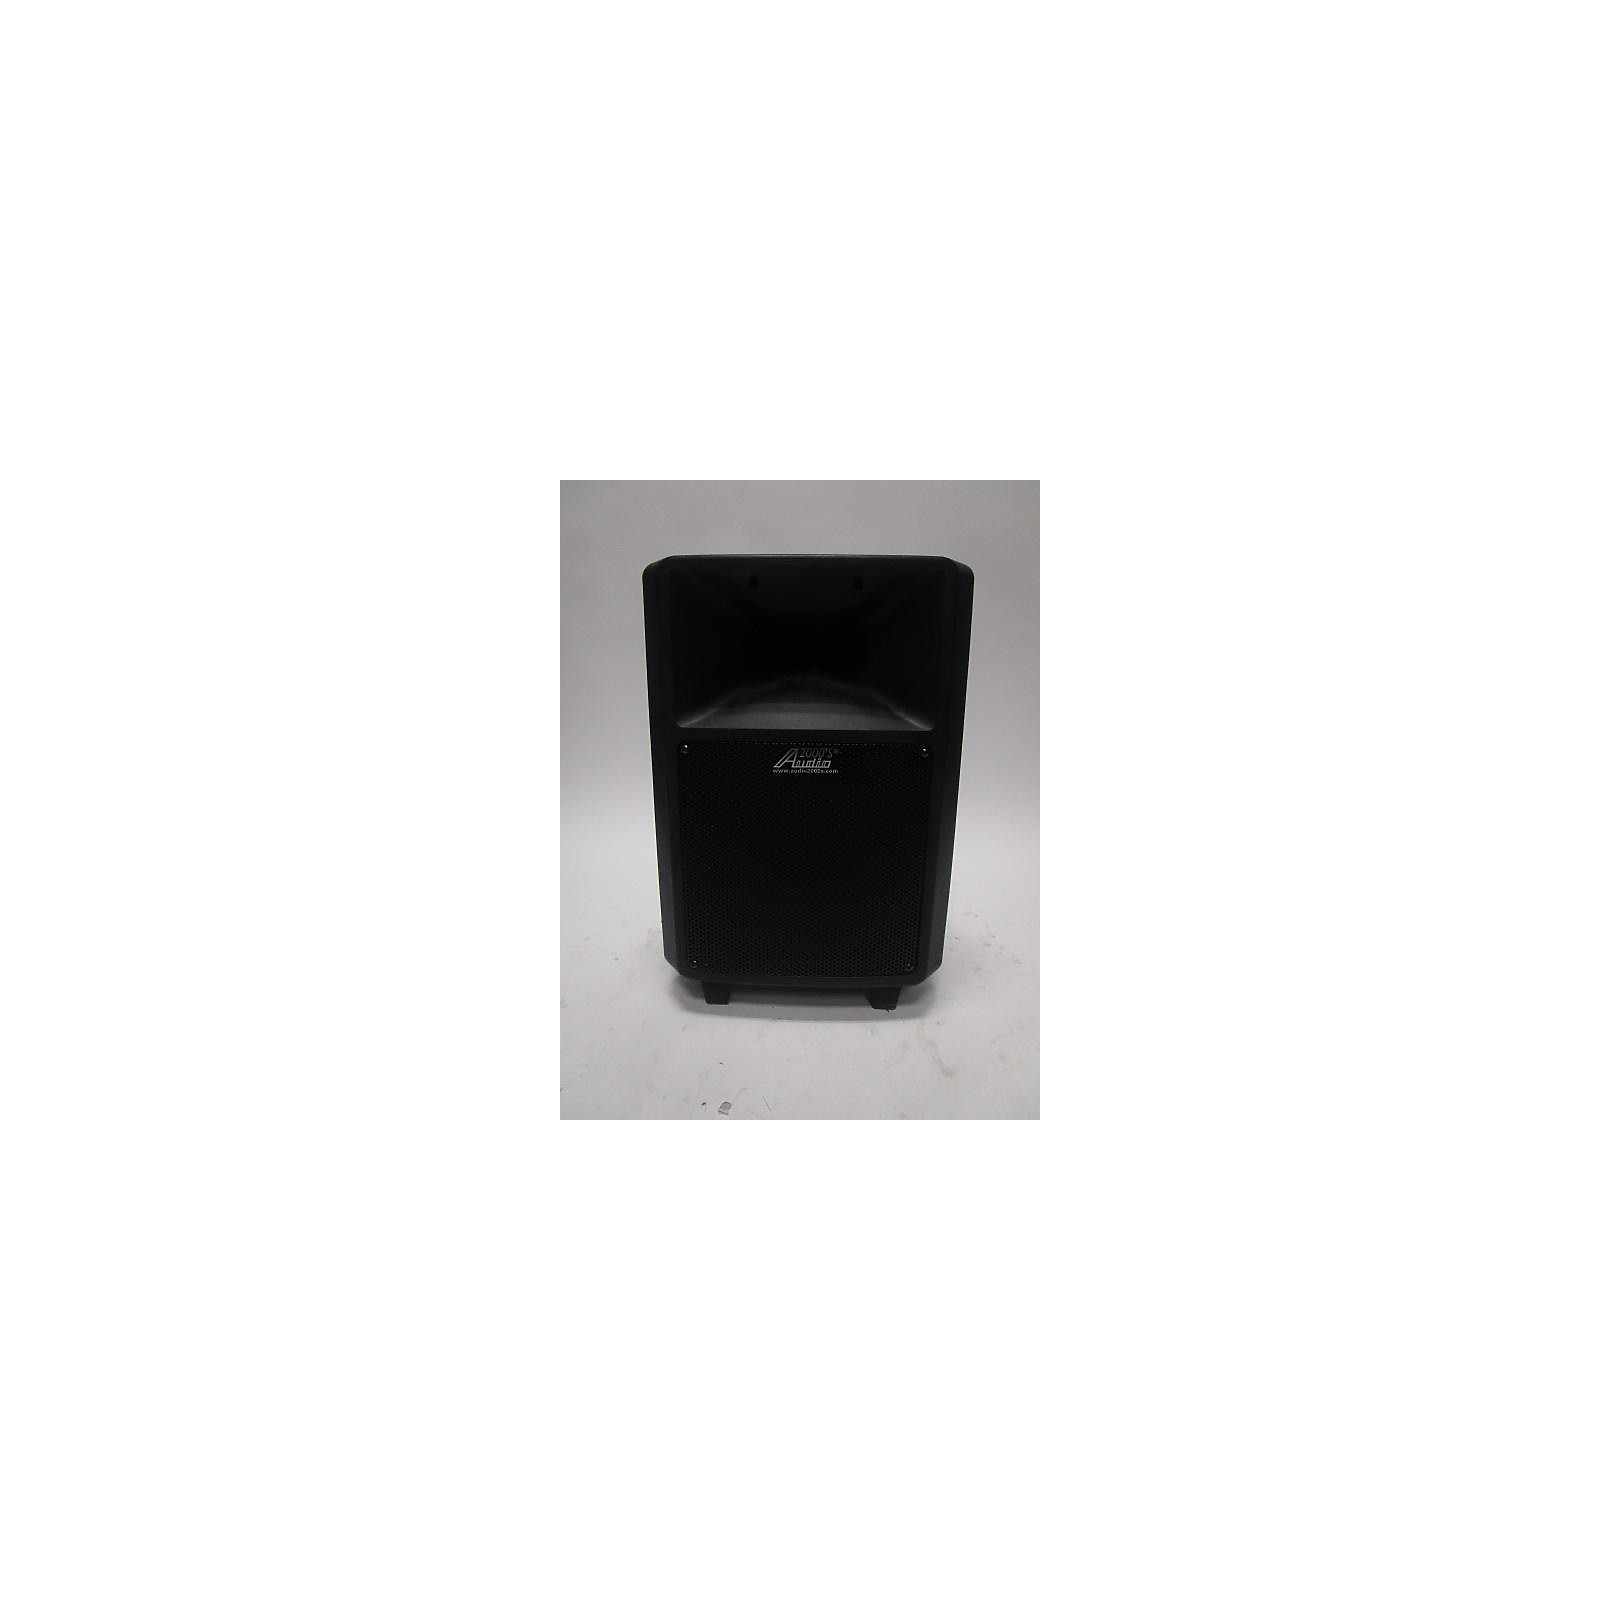 In Store Used Used 2015 2000s Audio Portable PA Powered Speaker